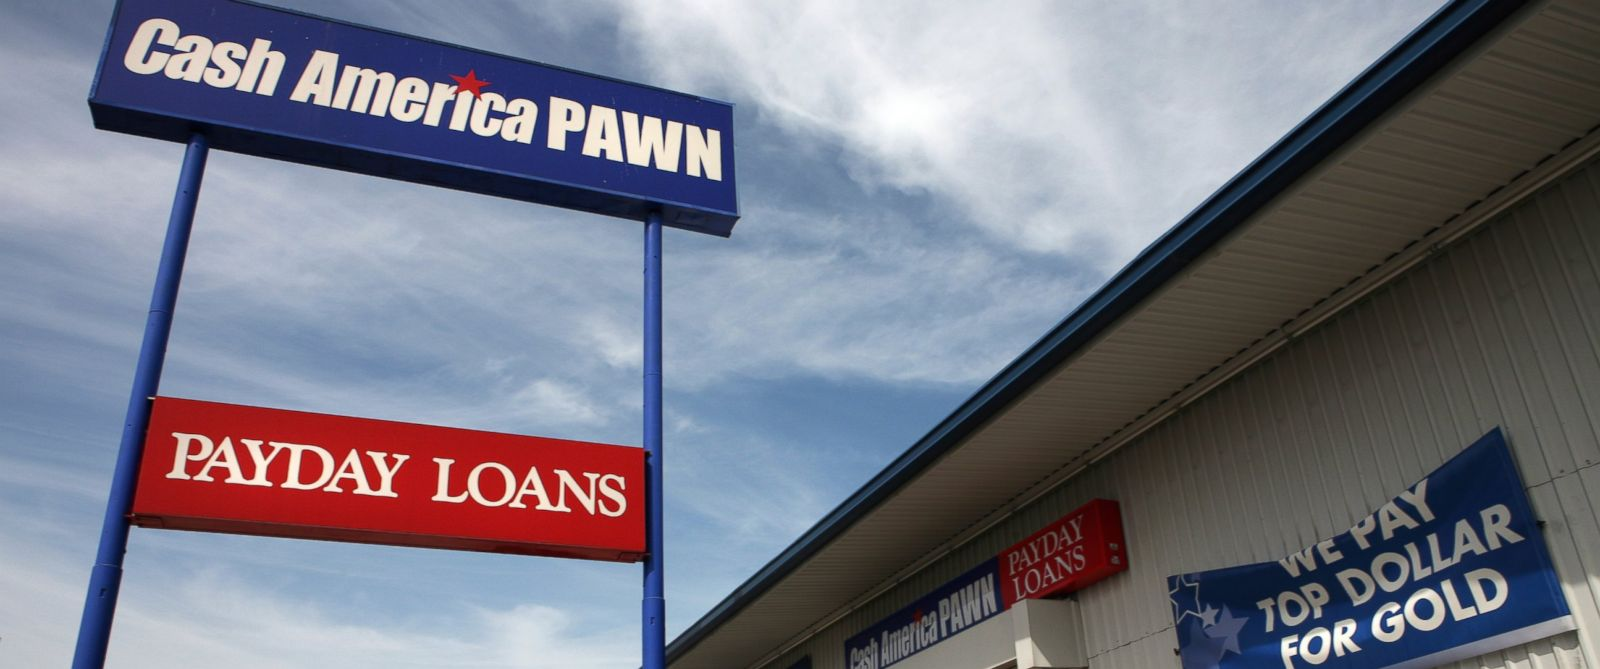 Consumer Financial Protection Bureau to Crack Down on Payday Loan 'Debt Traps' - ABC News